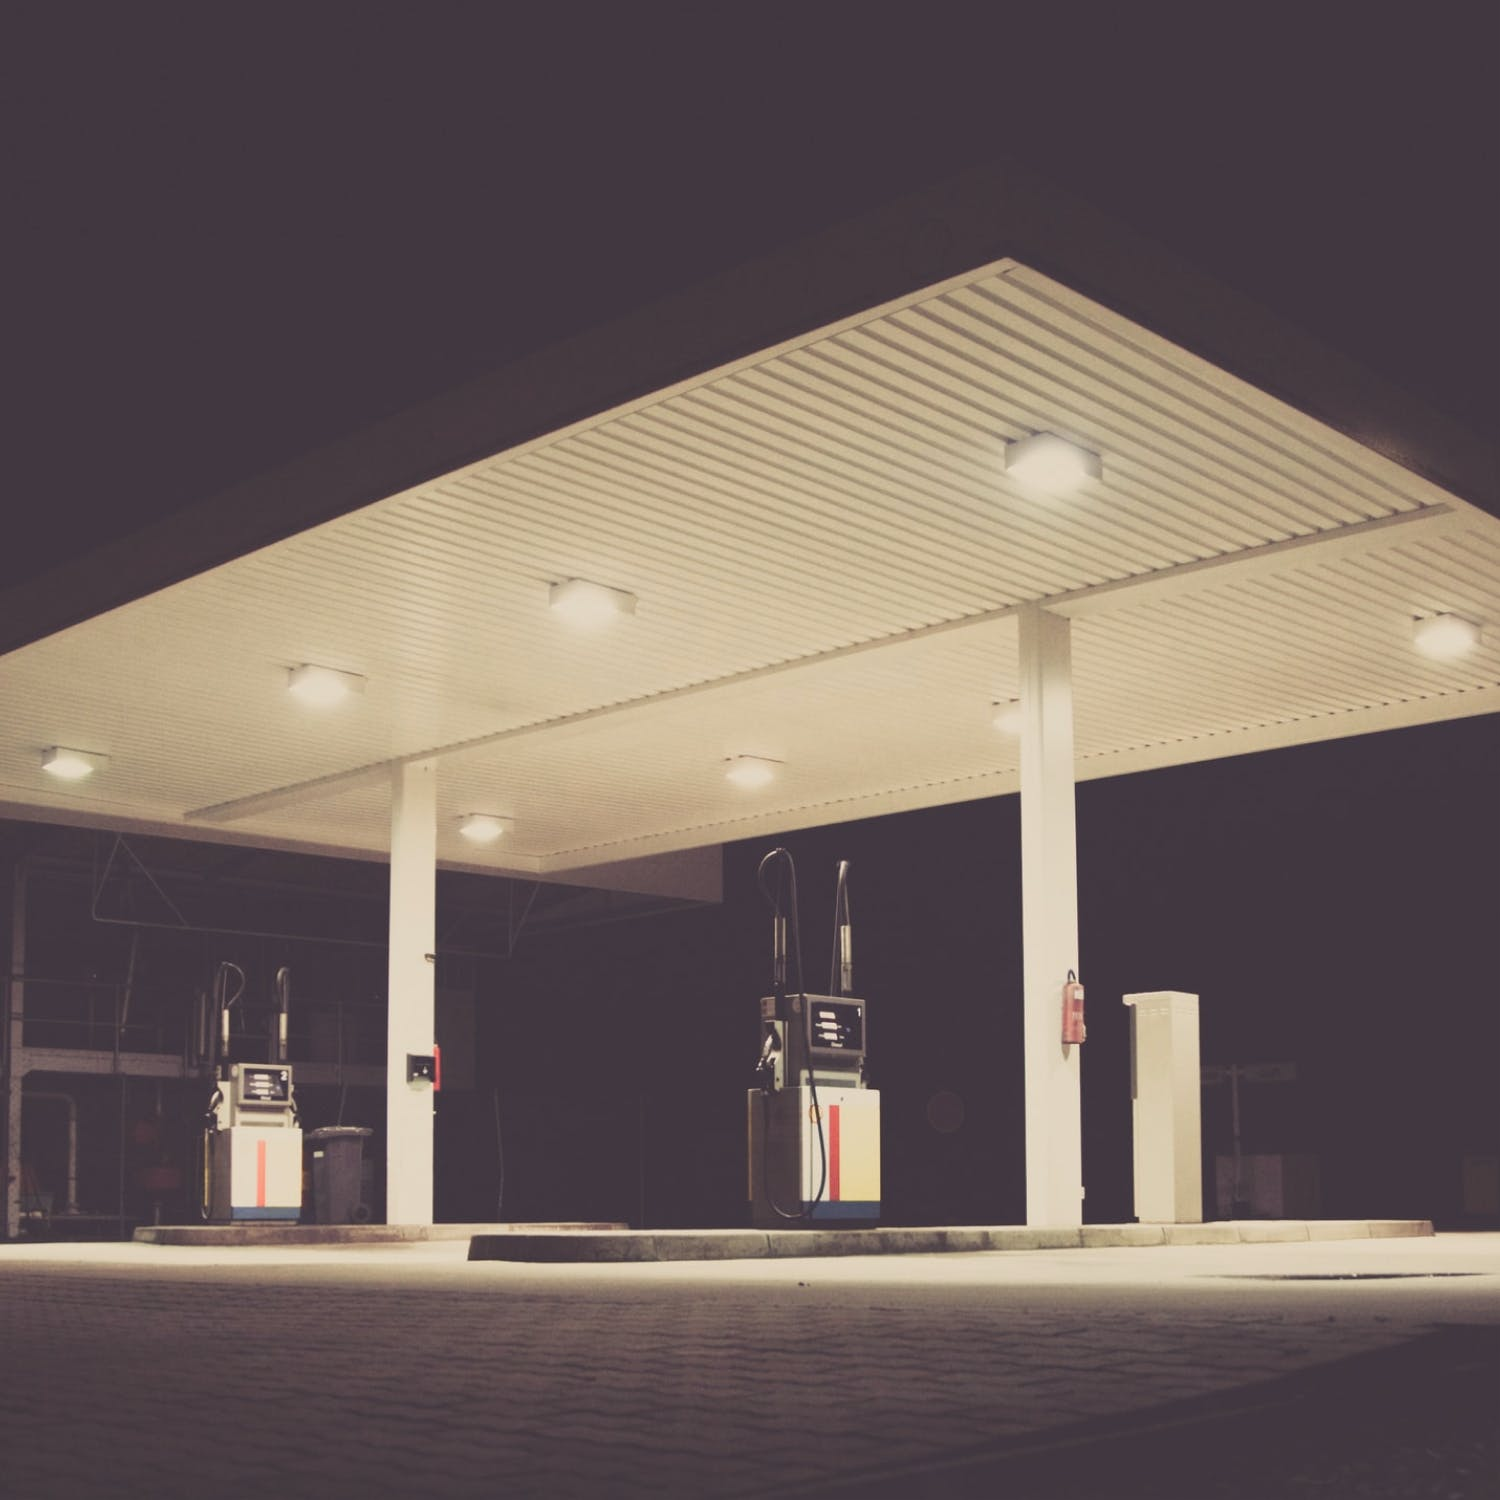 An empty gas station at night